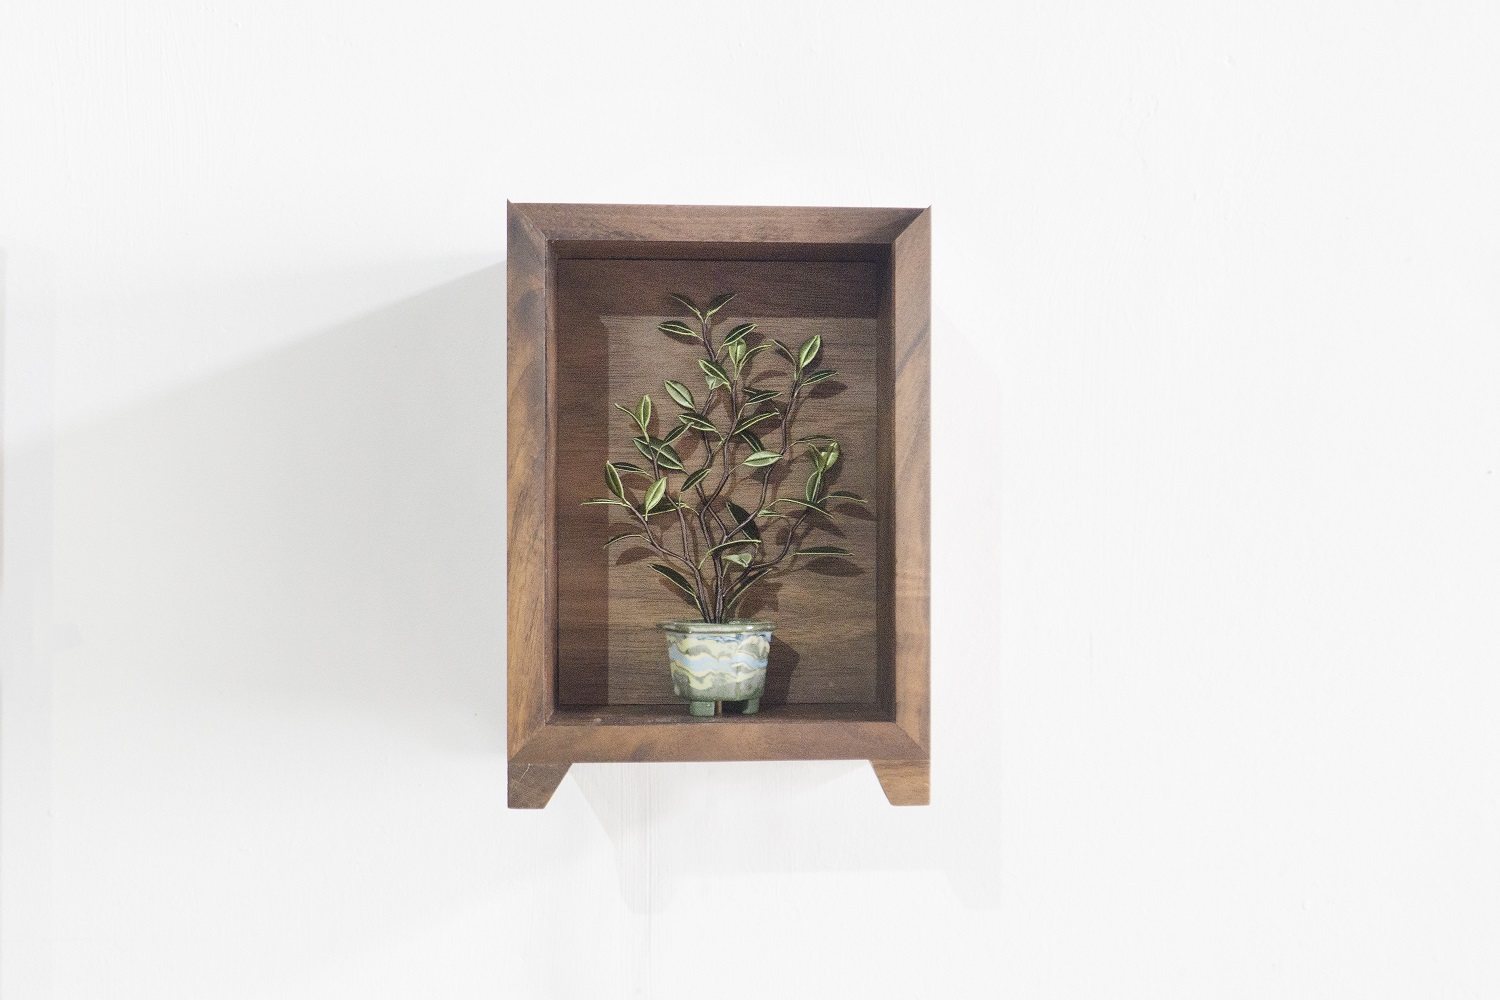 Pure Enjoyment in a Planter – 11|22.5×16×12 cm|2018|Embroidery thread, Walnut, Magnetic device